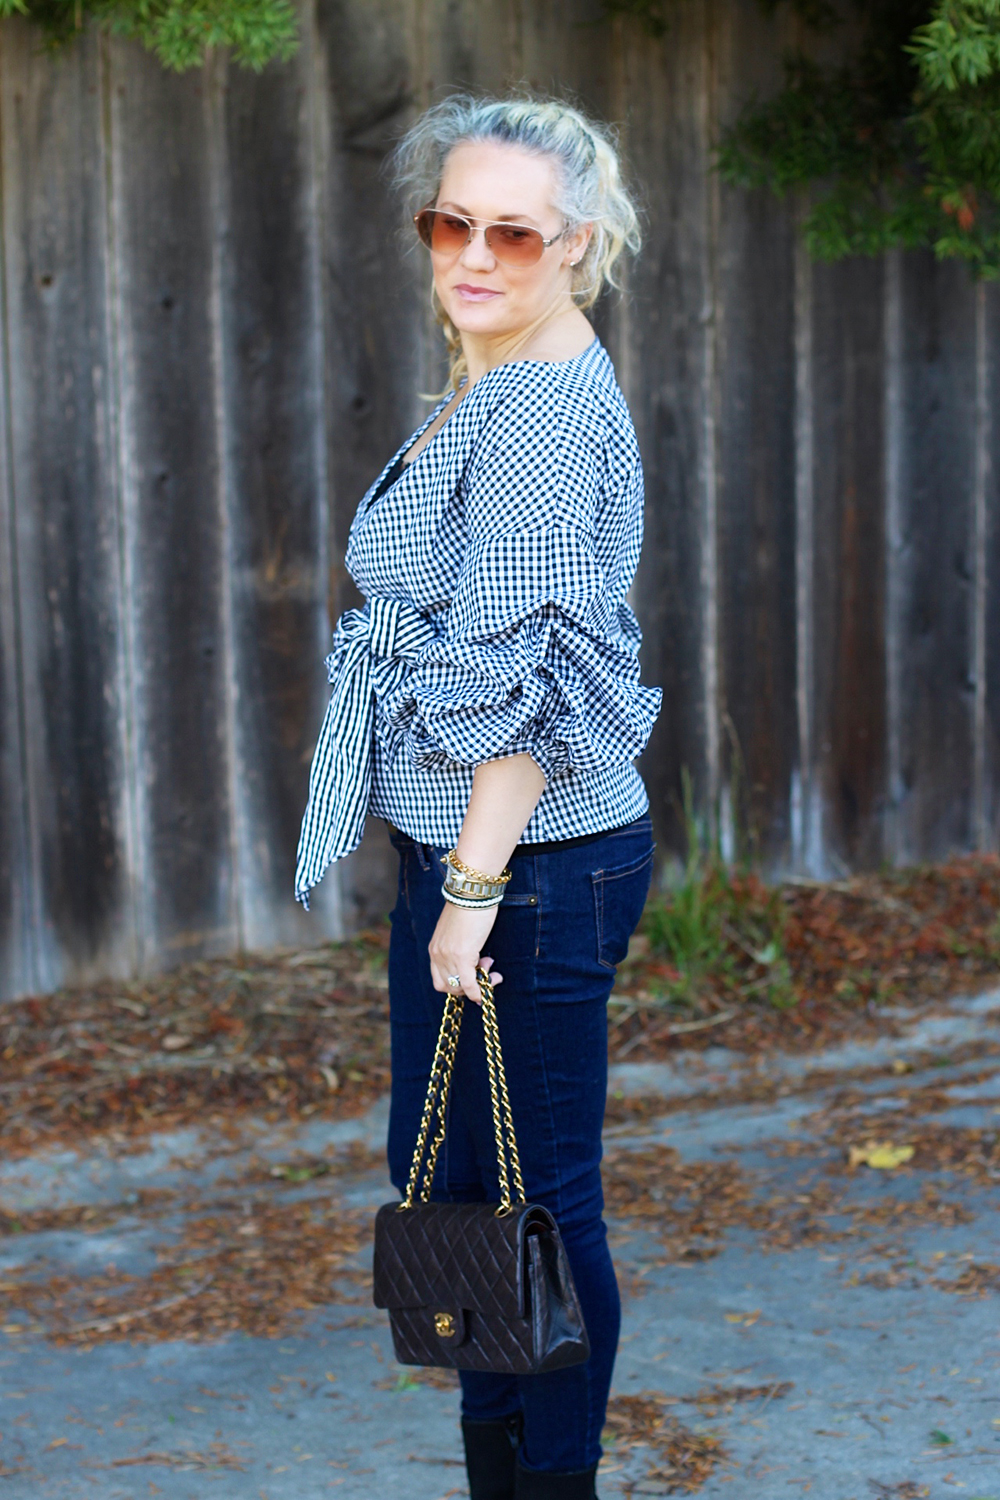 gingham-wrap-blouse-chichwish-chanel-handbag-manolo-blahnik-boots-outfit-inspiration-fashion-blogger-have-need-want-15